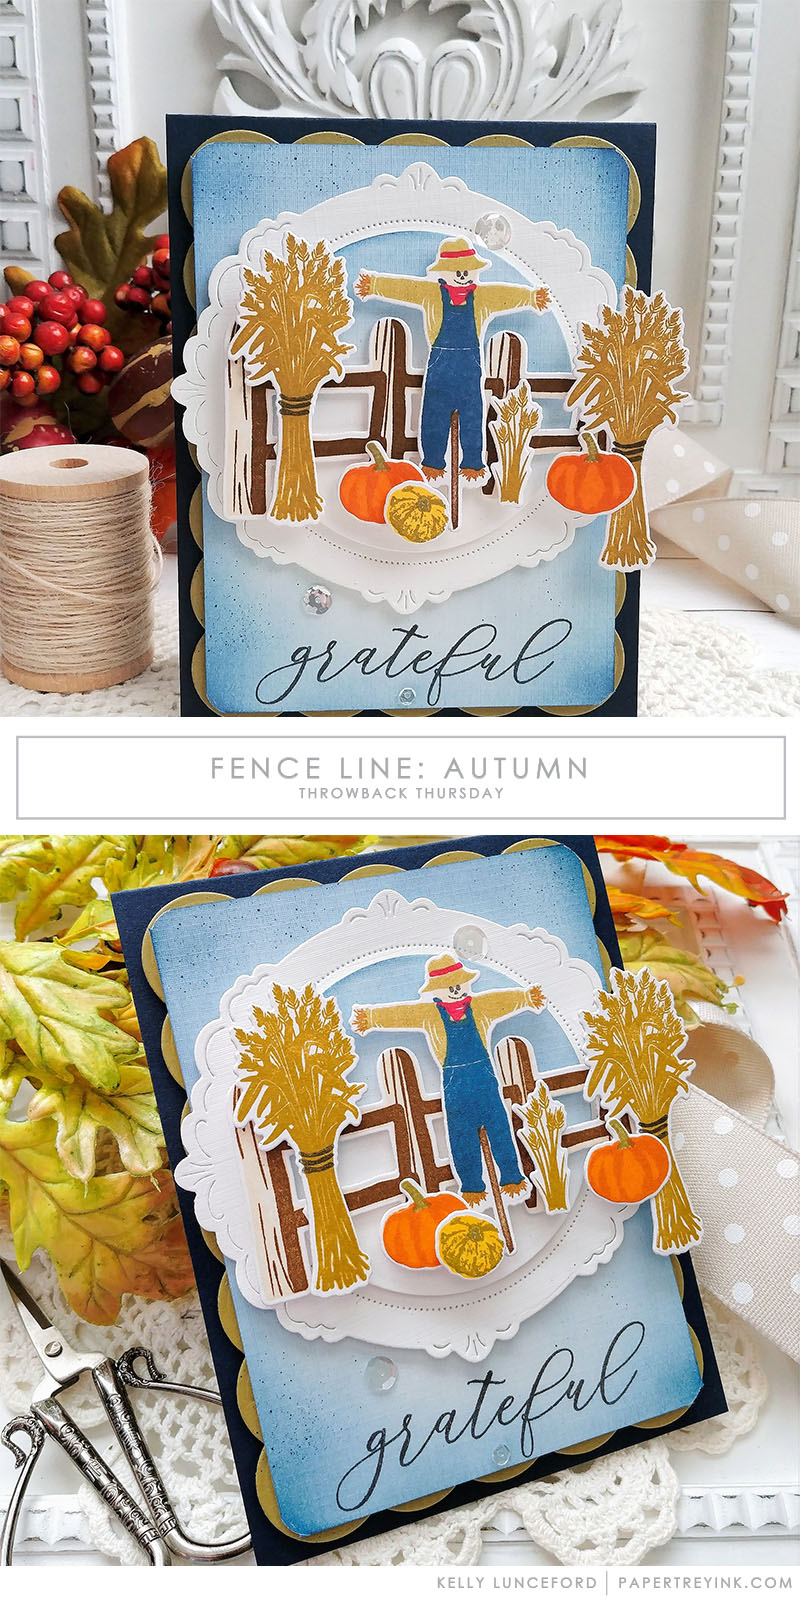 Throwback Thursday: Fence Line: Autumn